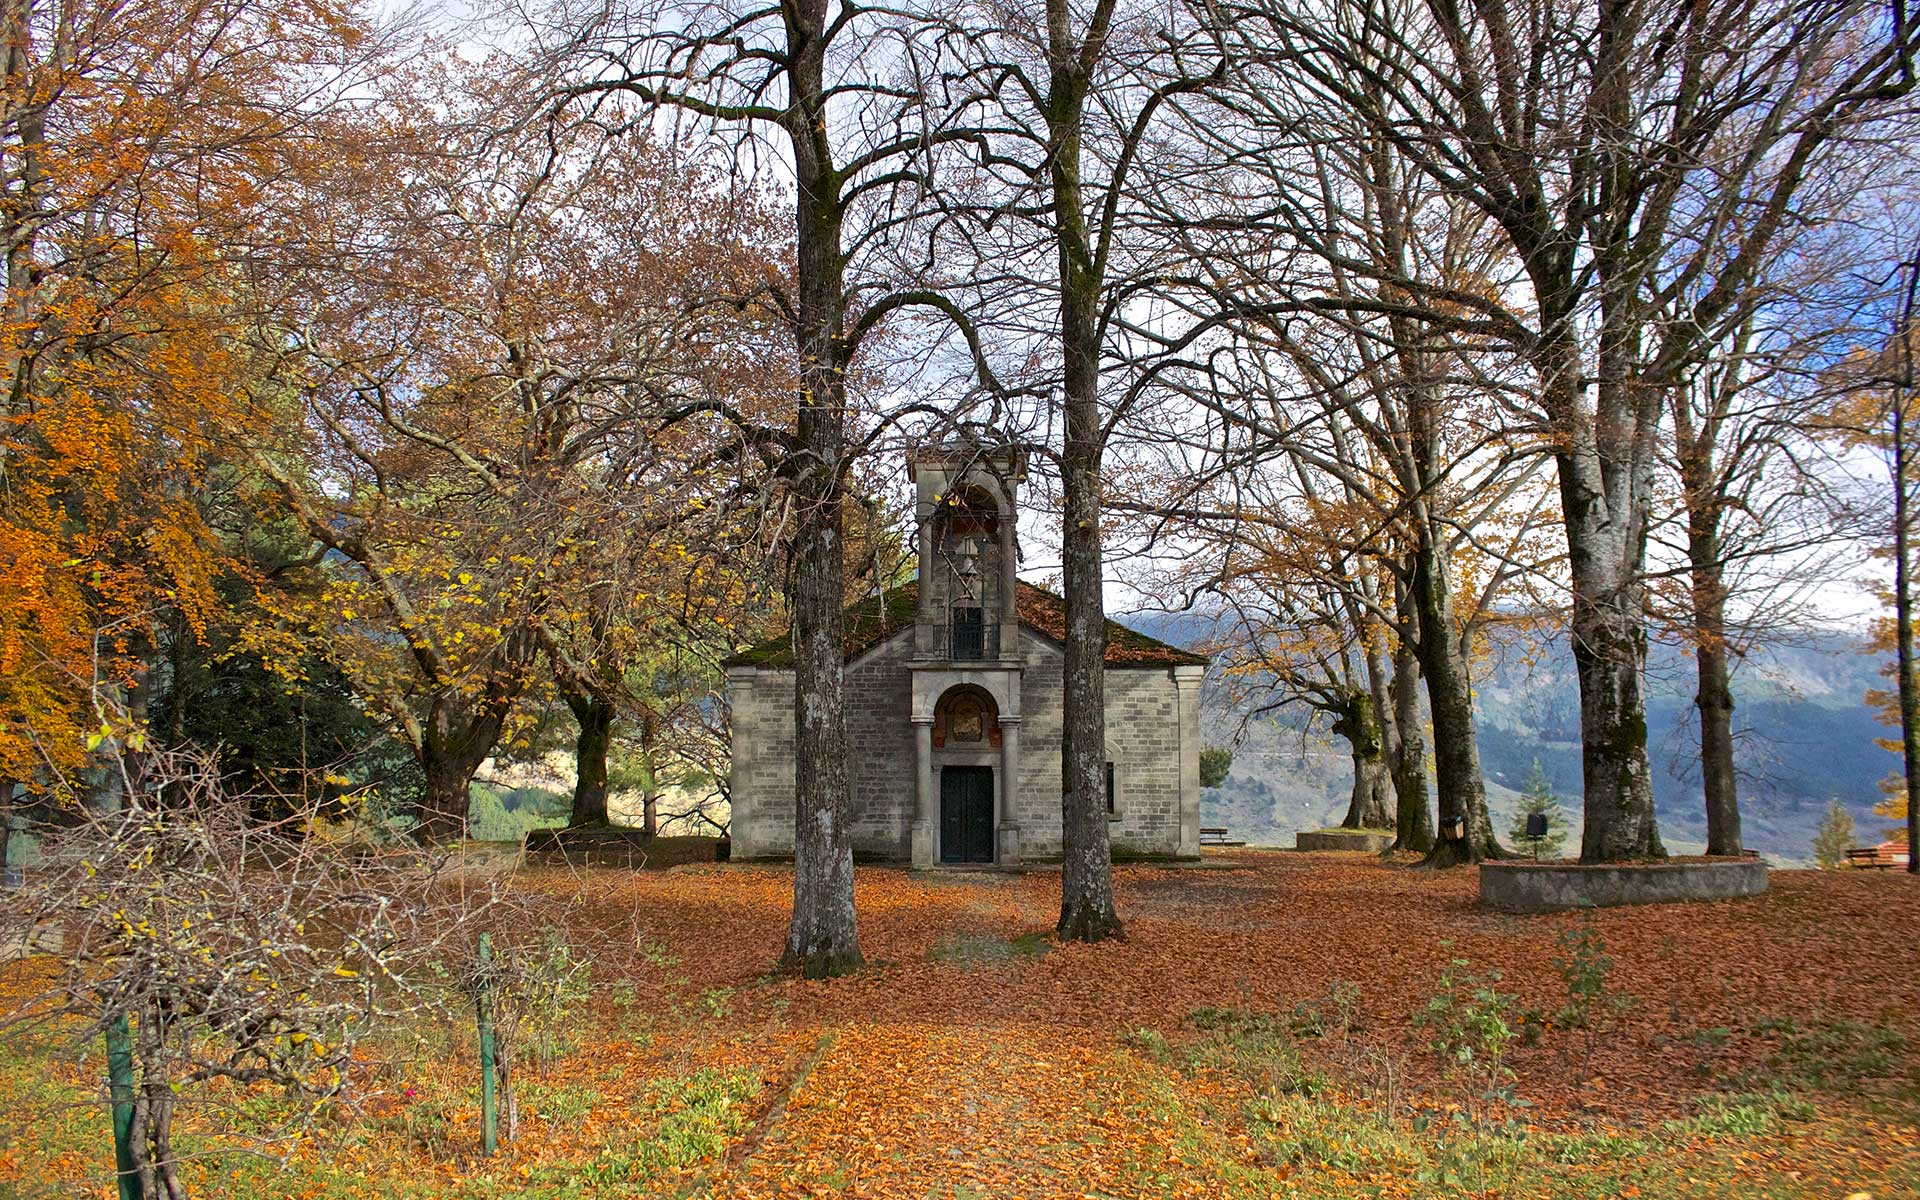 church-in-forest